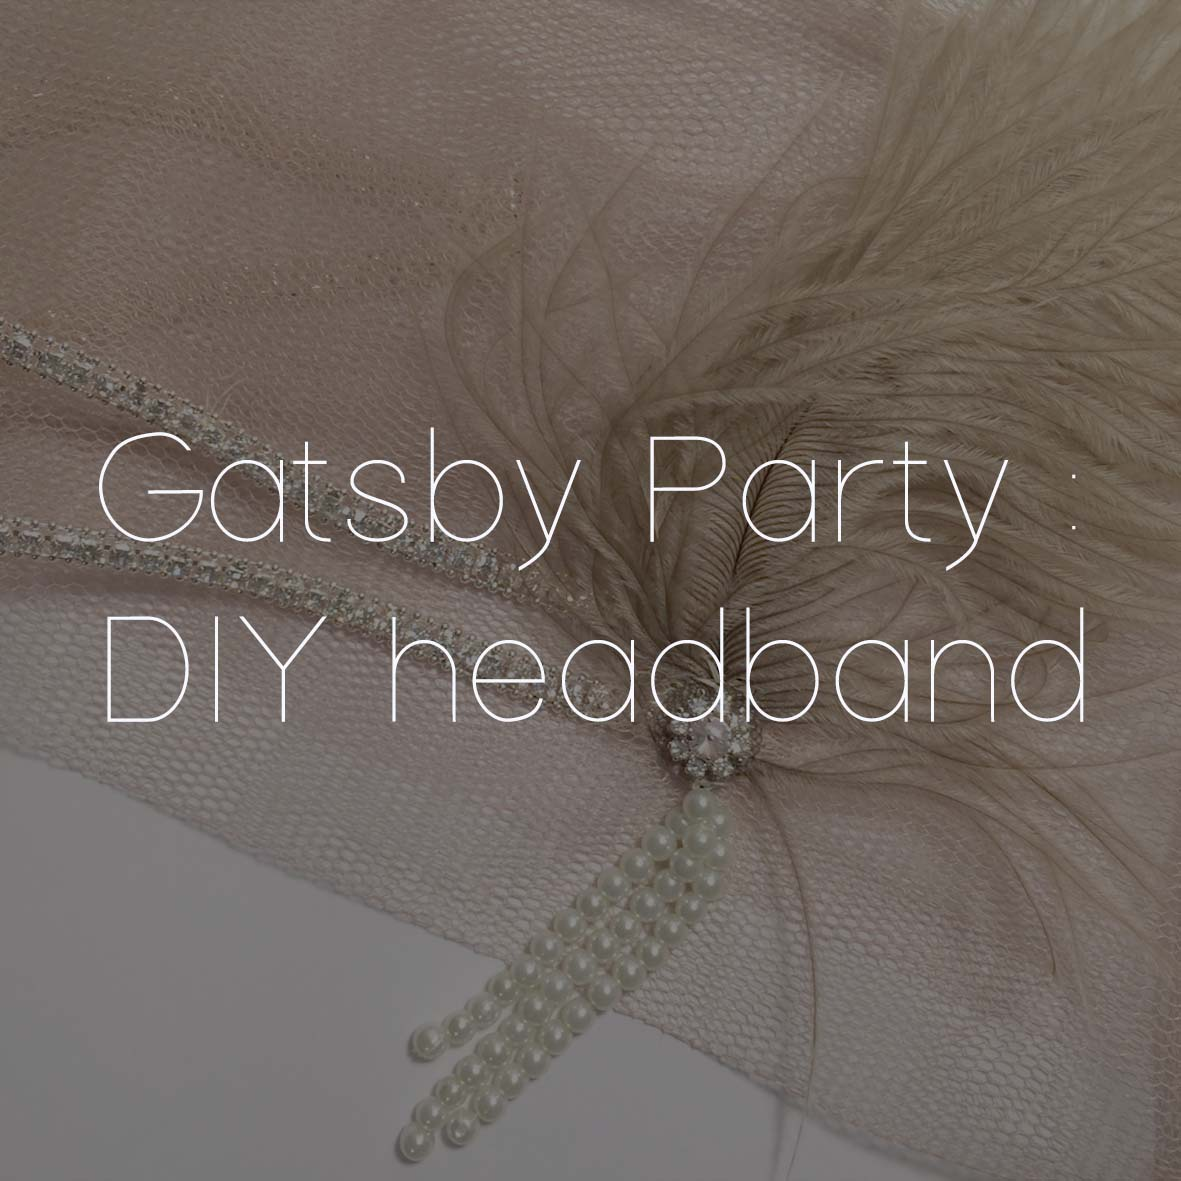 43 GATSBY PARTY DIY HEADBAND